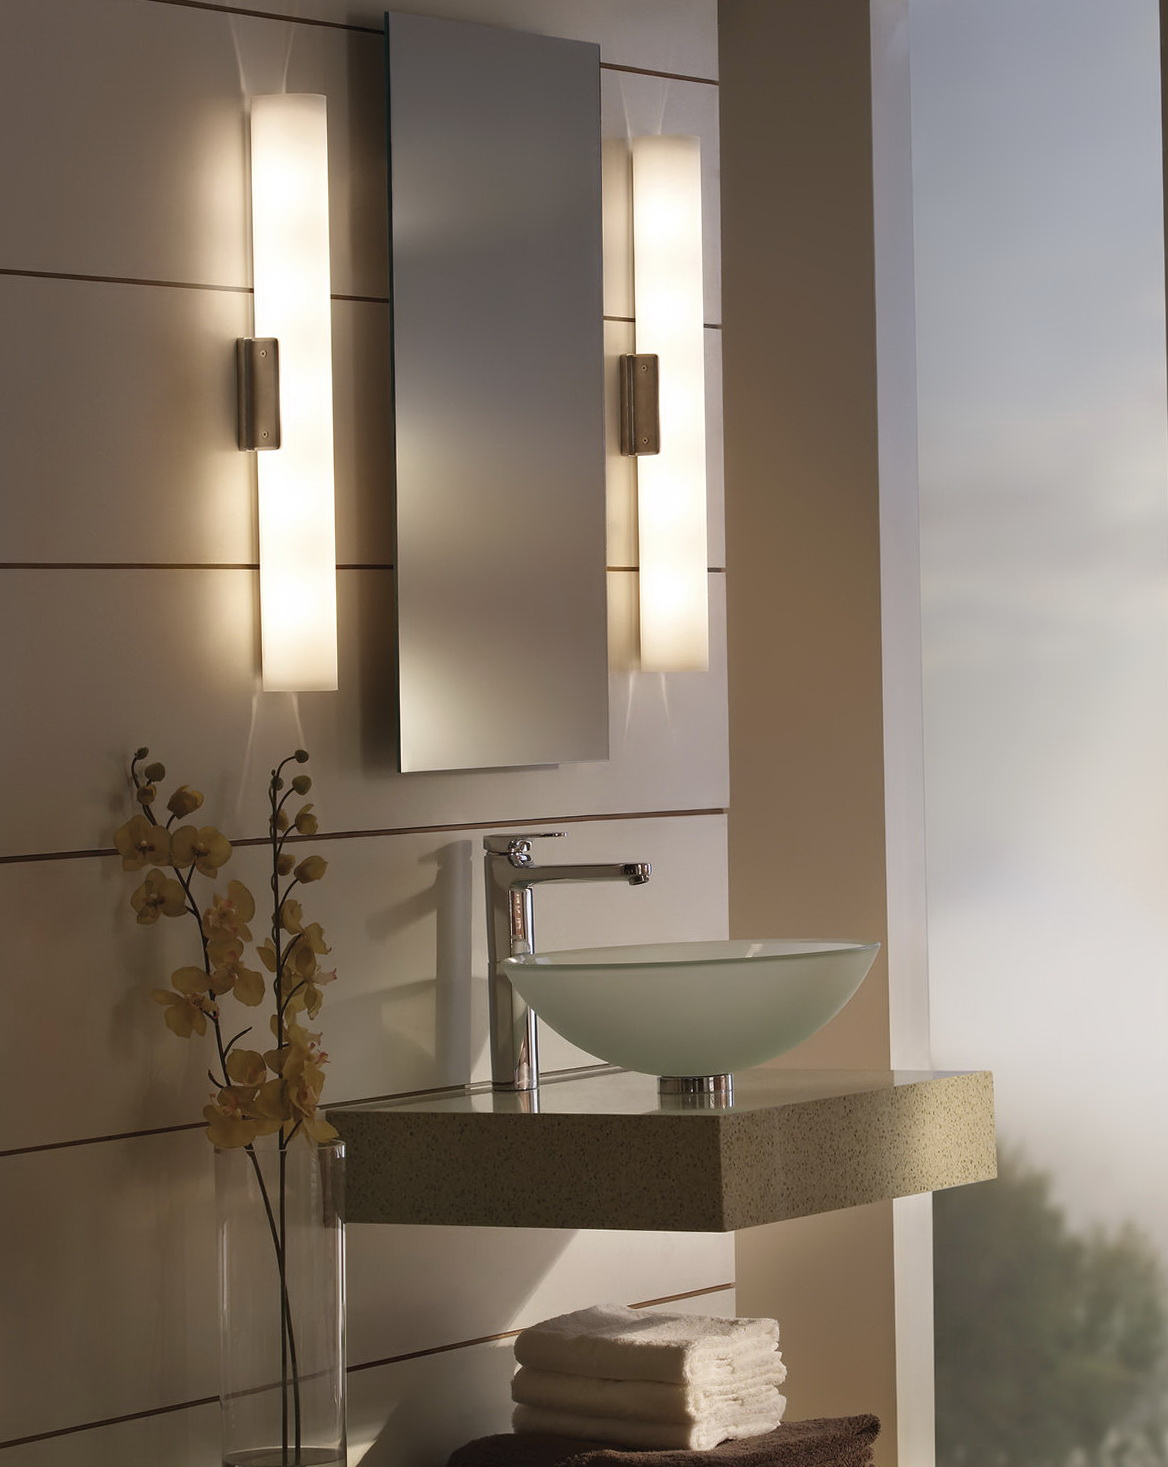 Bathroom Mirrors With Lights In Them Home Design Ideas